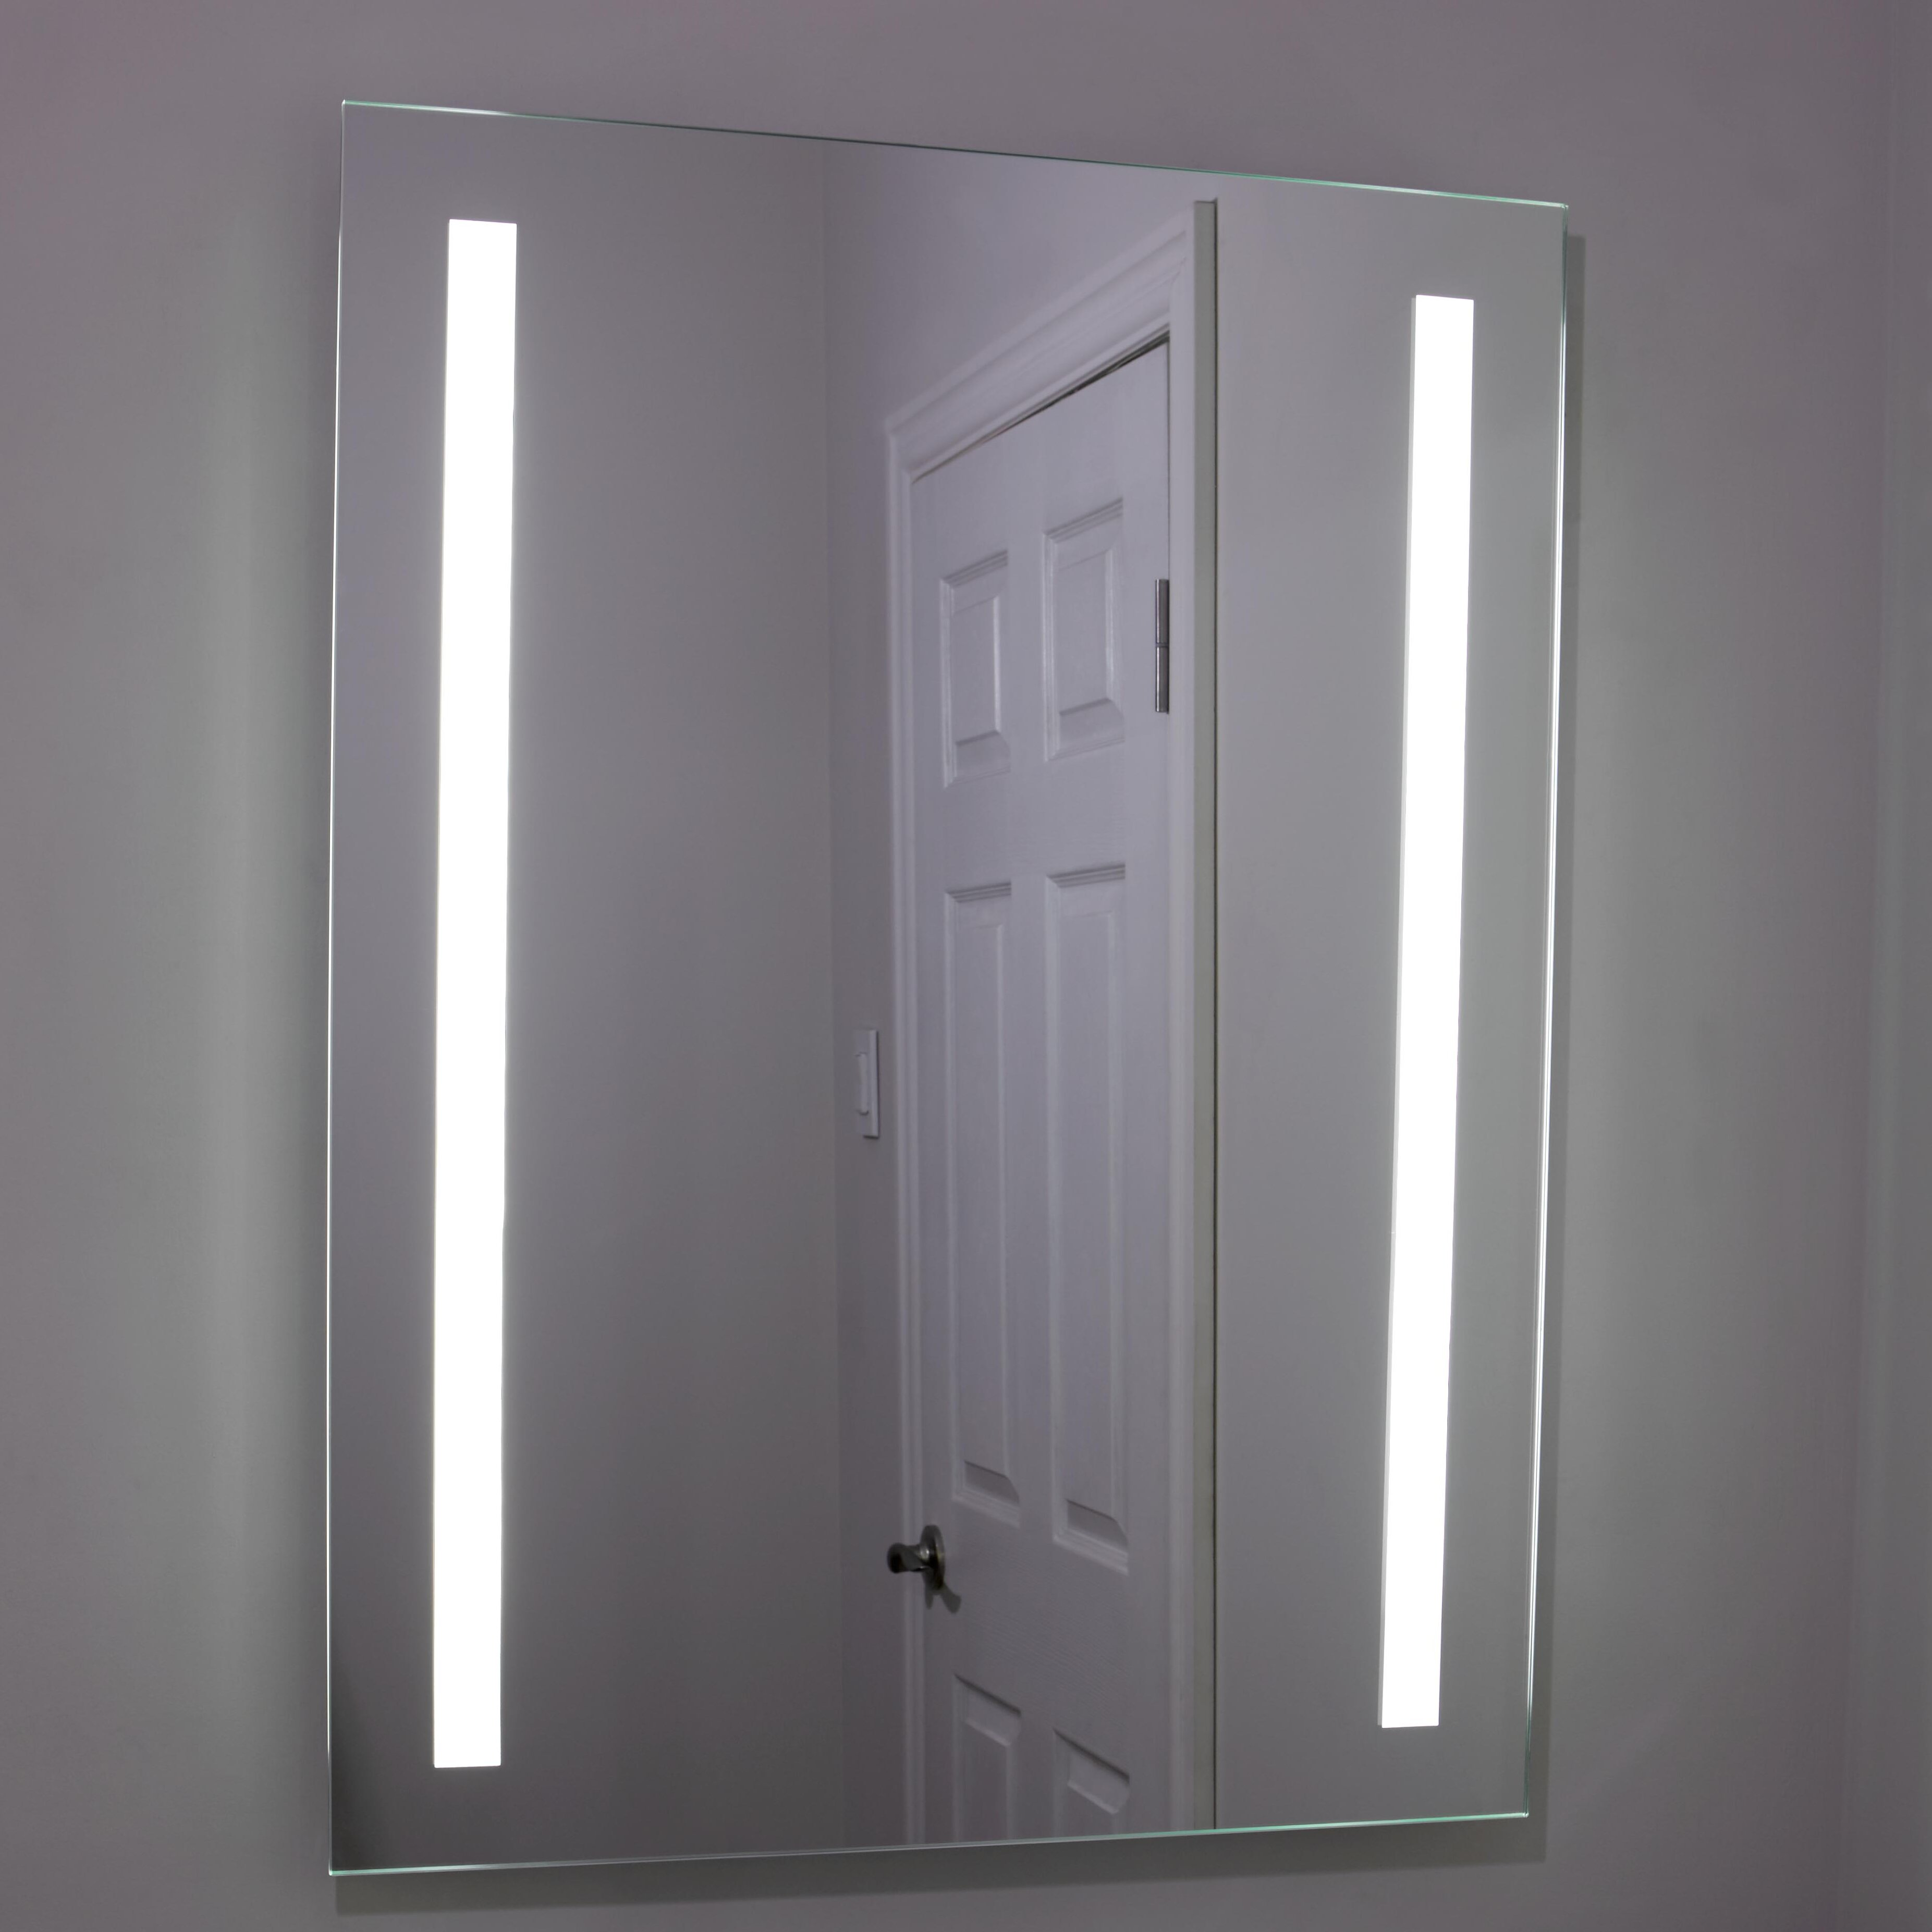 erias home designs lighted and illuminated beautiful wall mirror. Black Bedroom Furniture Sets. Home Design Ideas